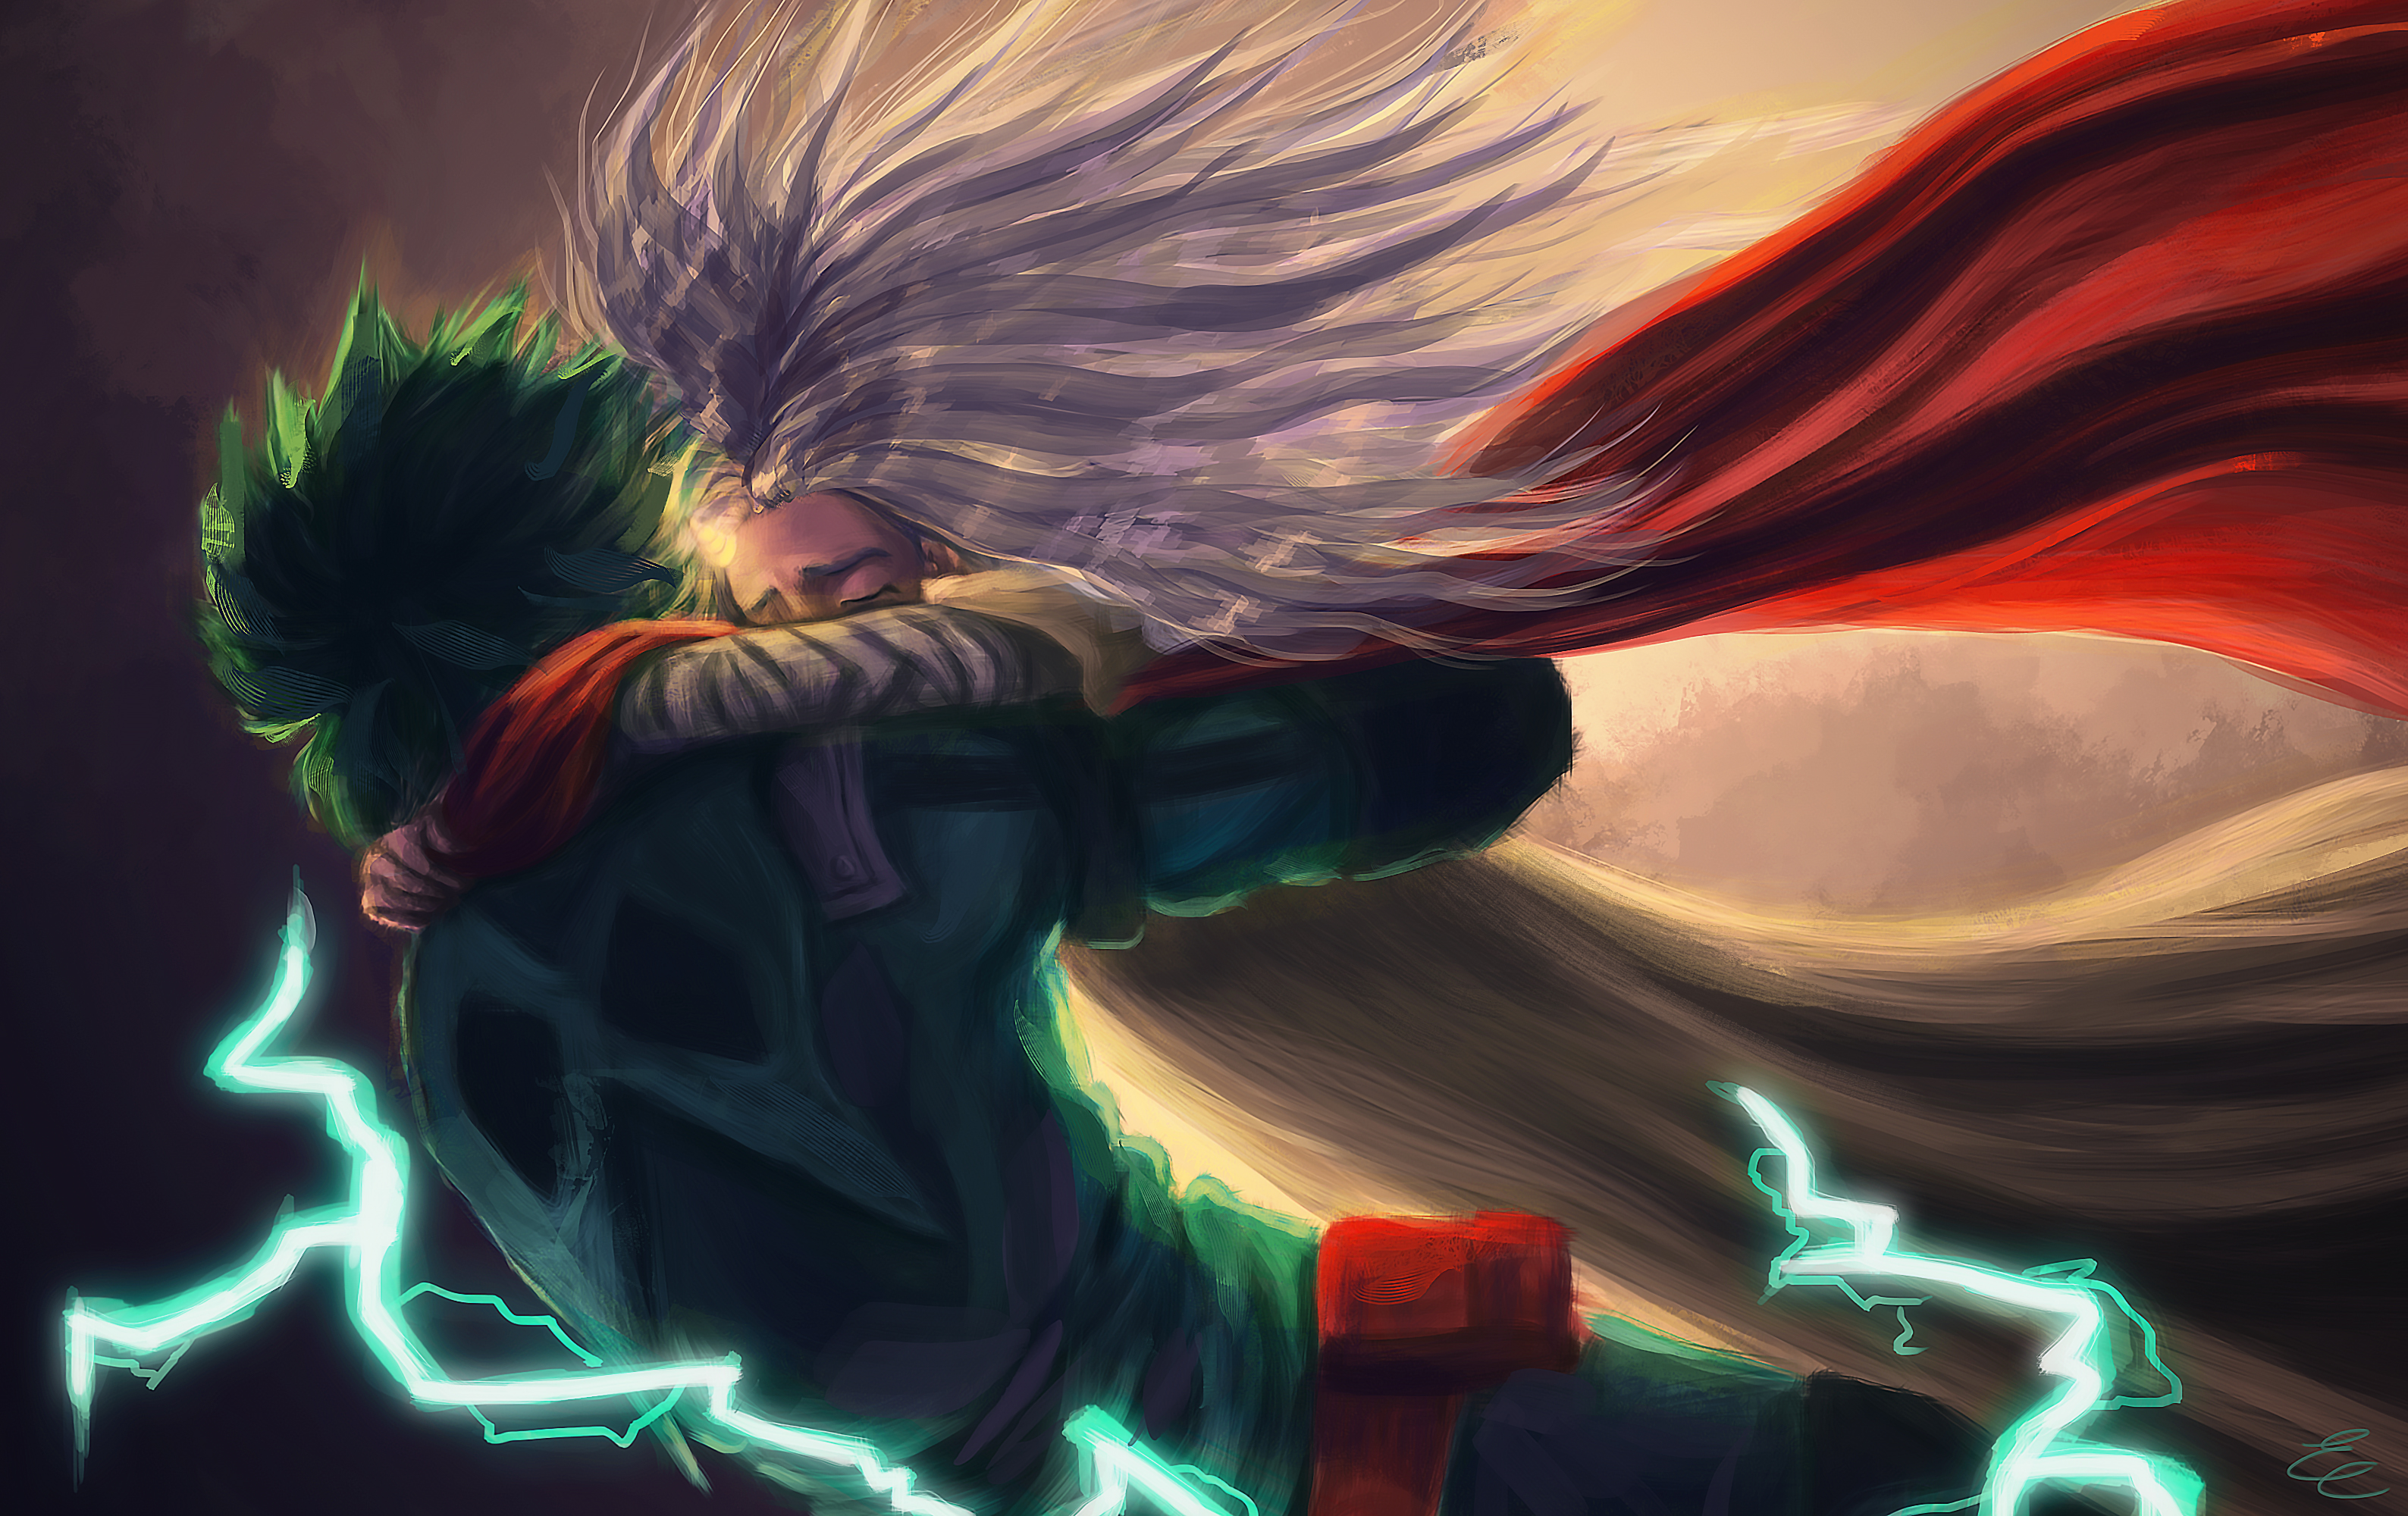 Boku No Hero Academia fan art